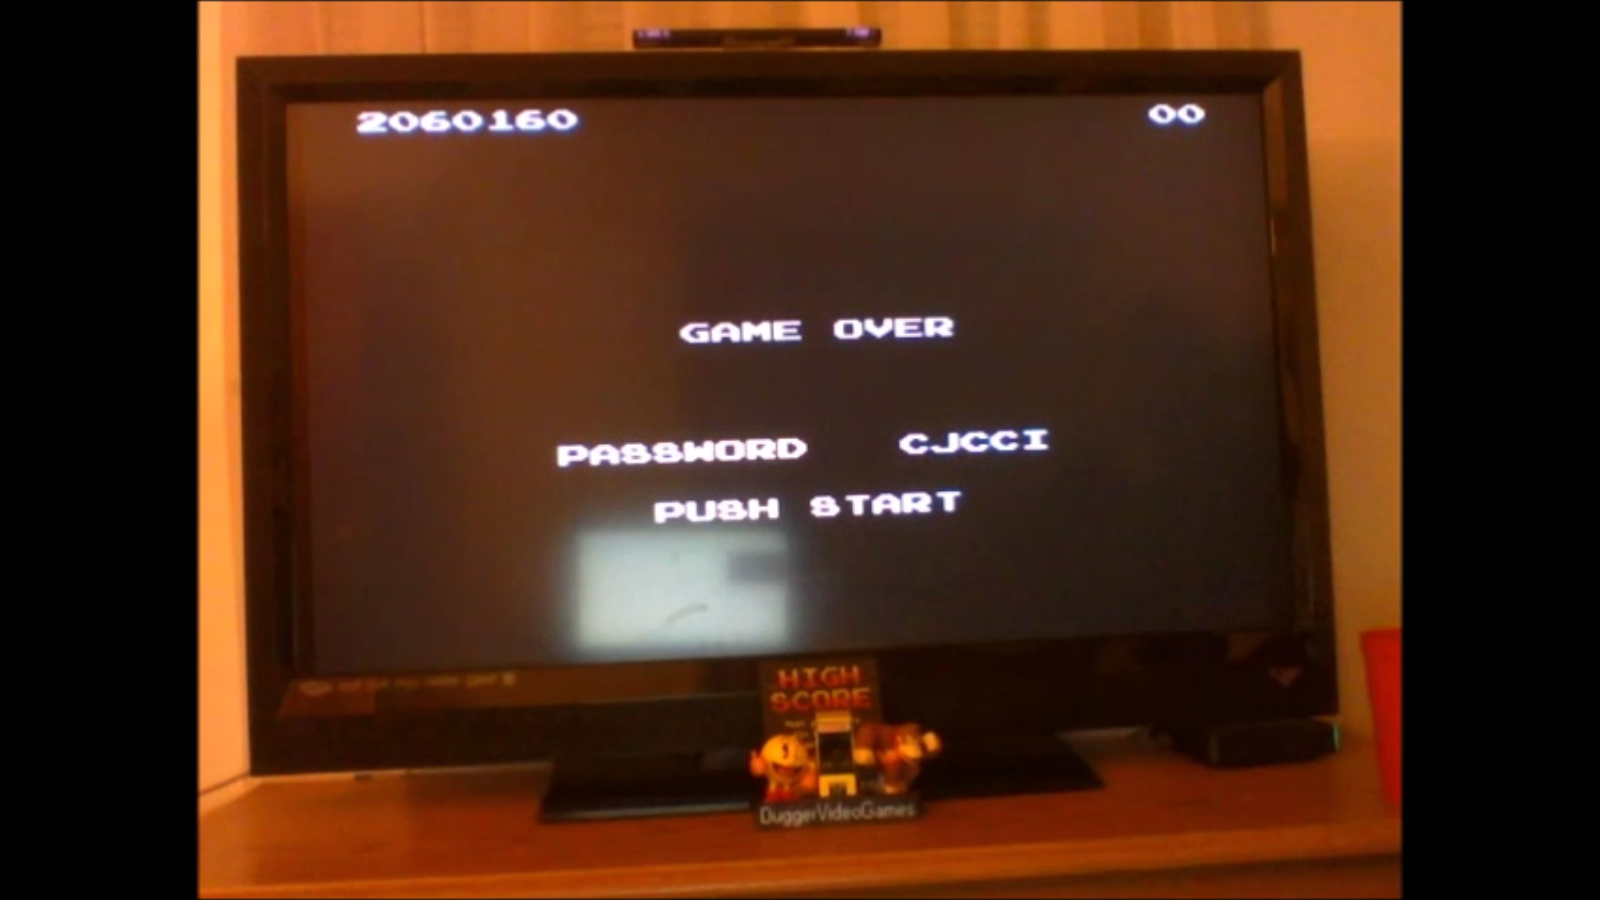 DuggerVideoGames: Bubble Bobble Arcade Edition (NES/Famicom Emulated) 2,060,160 points on 2017-03-04 01:43:48